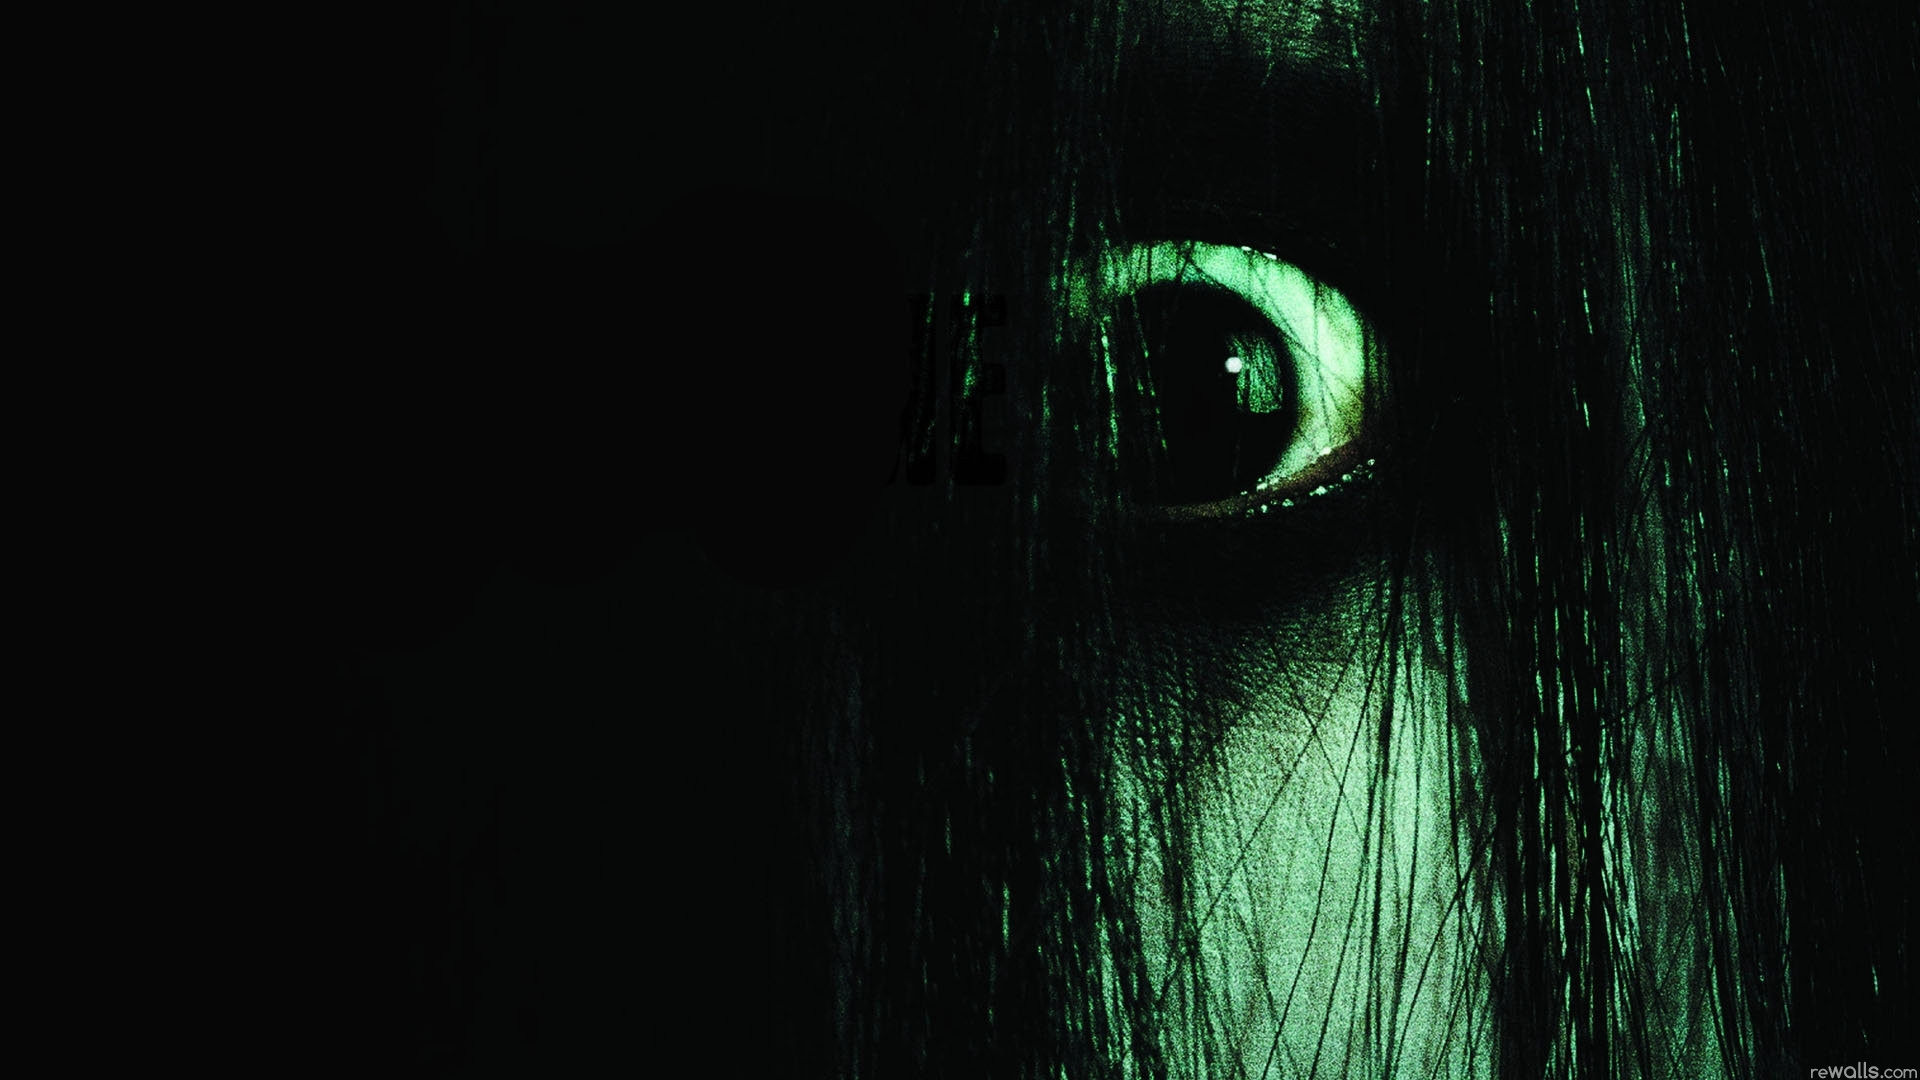 haunted eyes | real haunted houses,the unexplained & spooky things